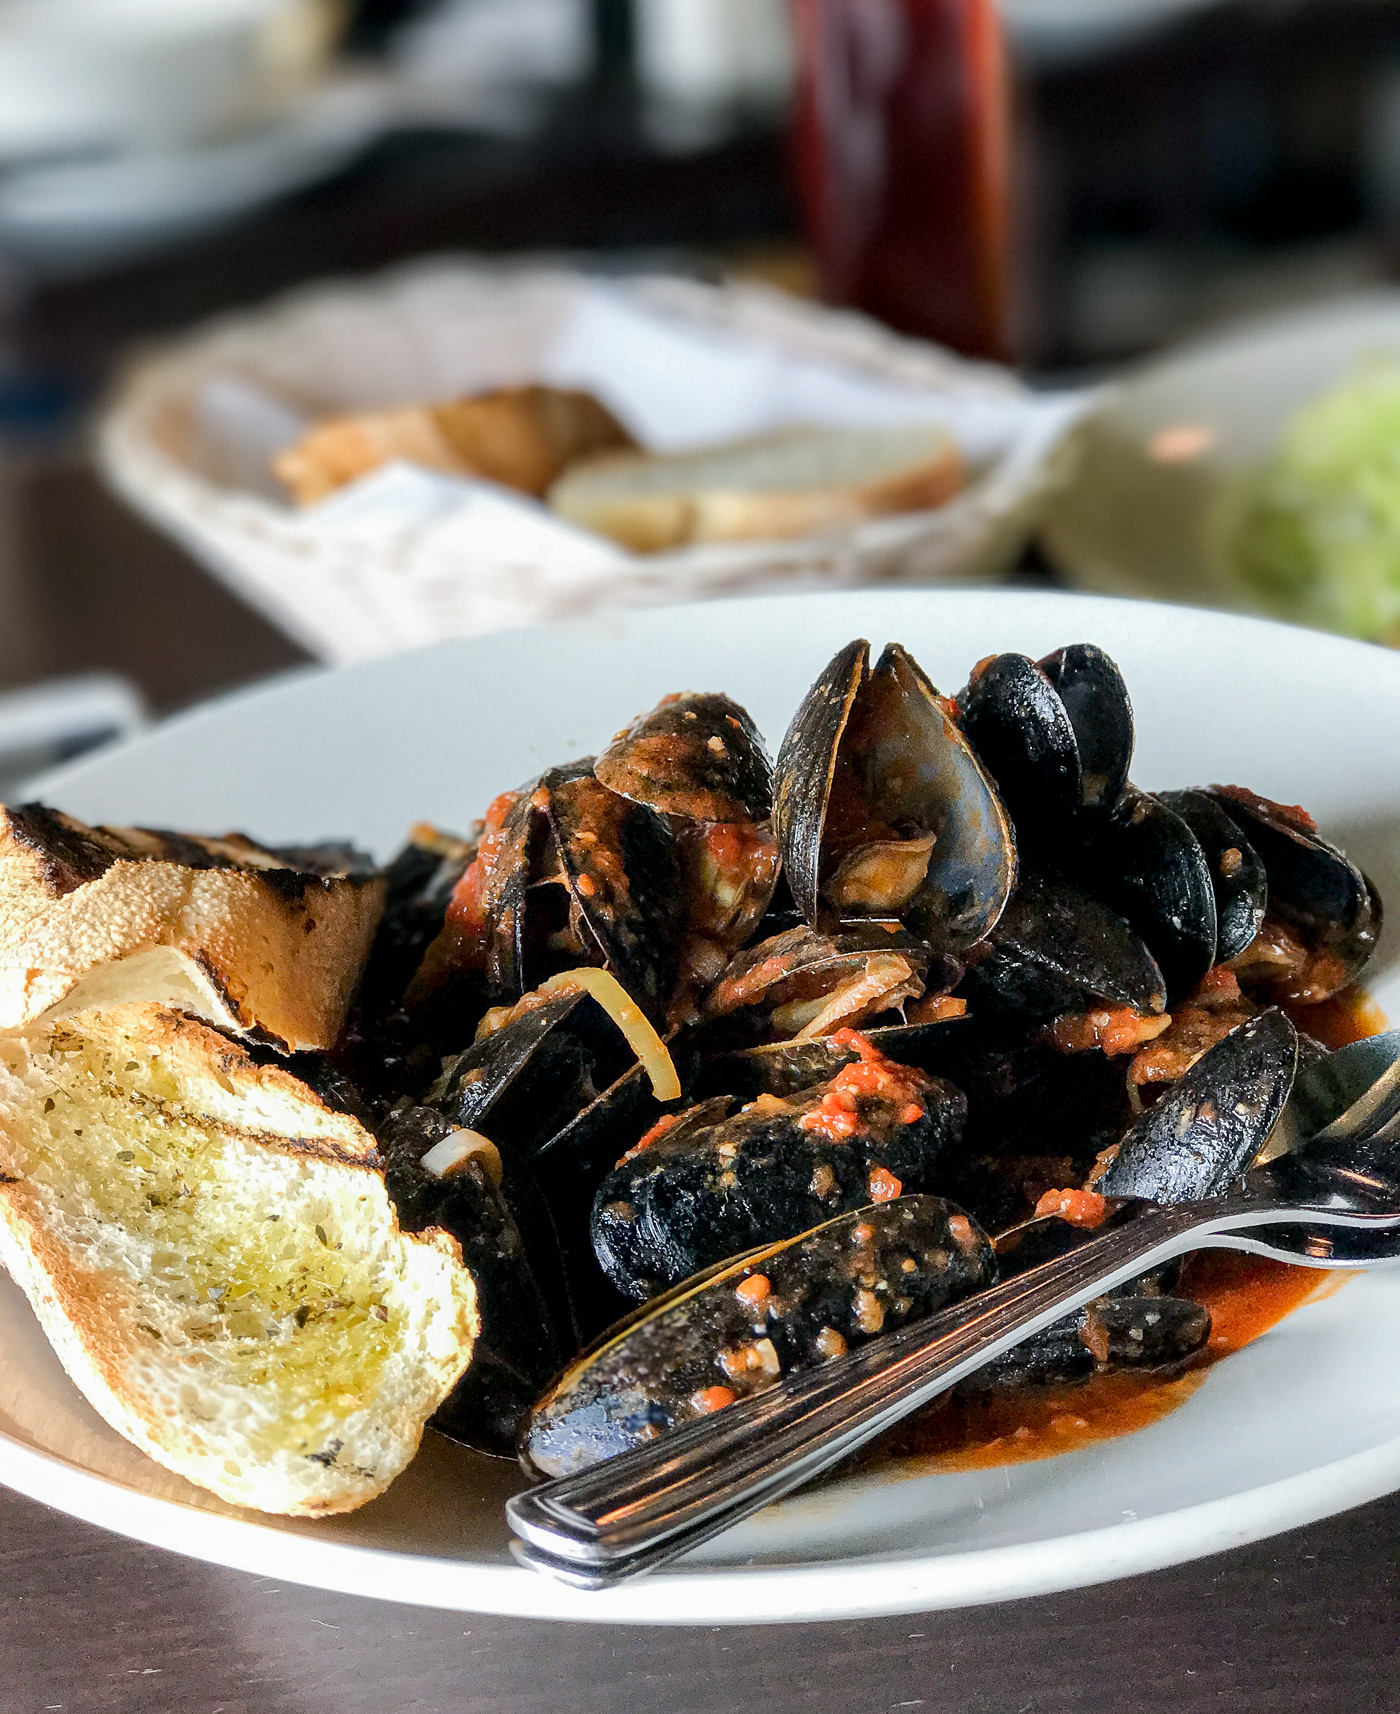 Mussels at Marcello's Italian restaurant in Vaughan